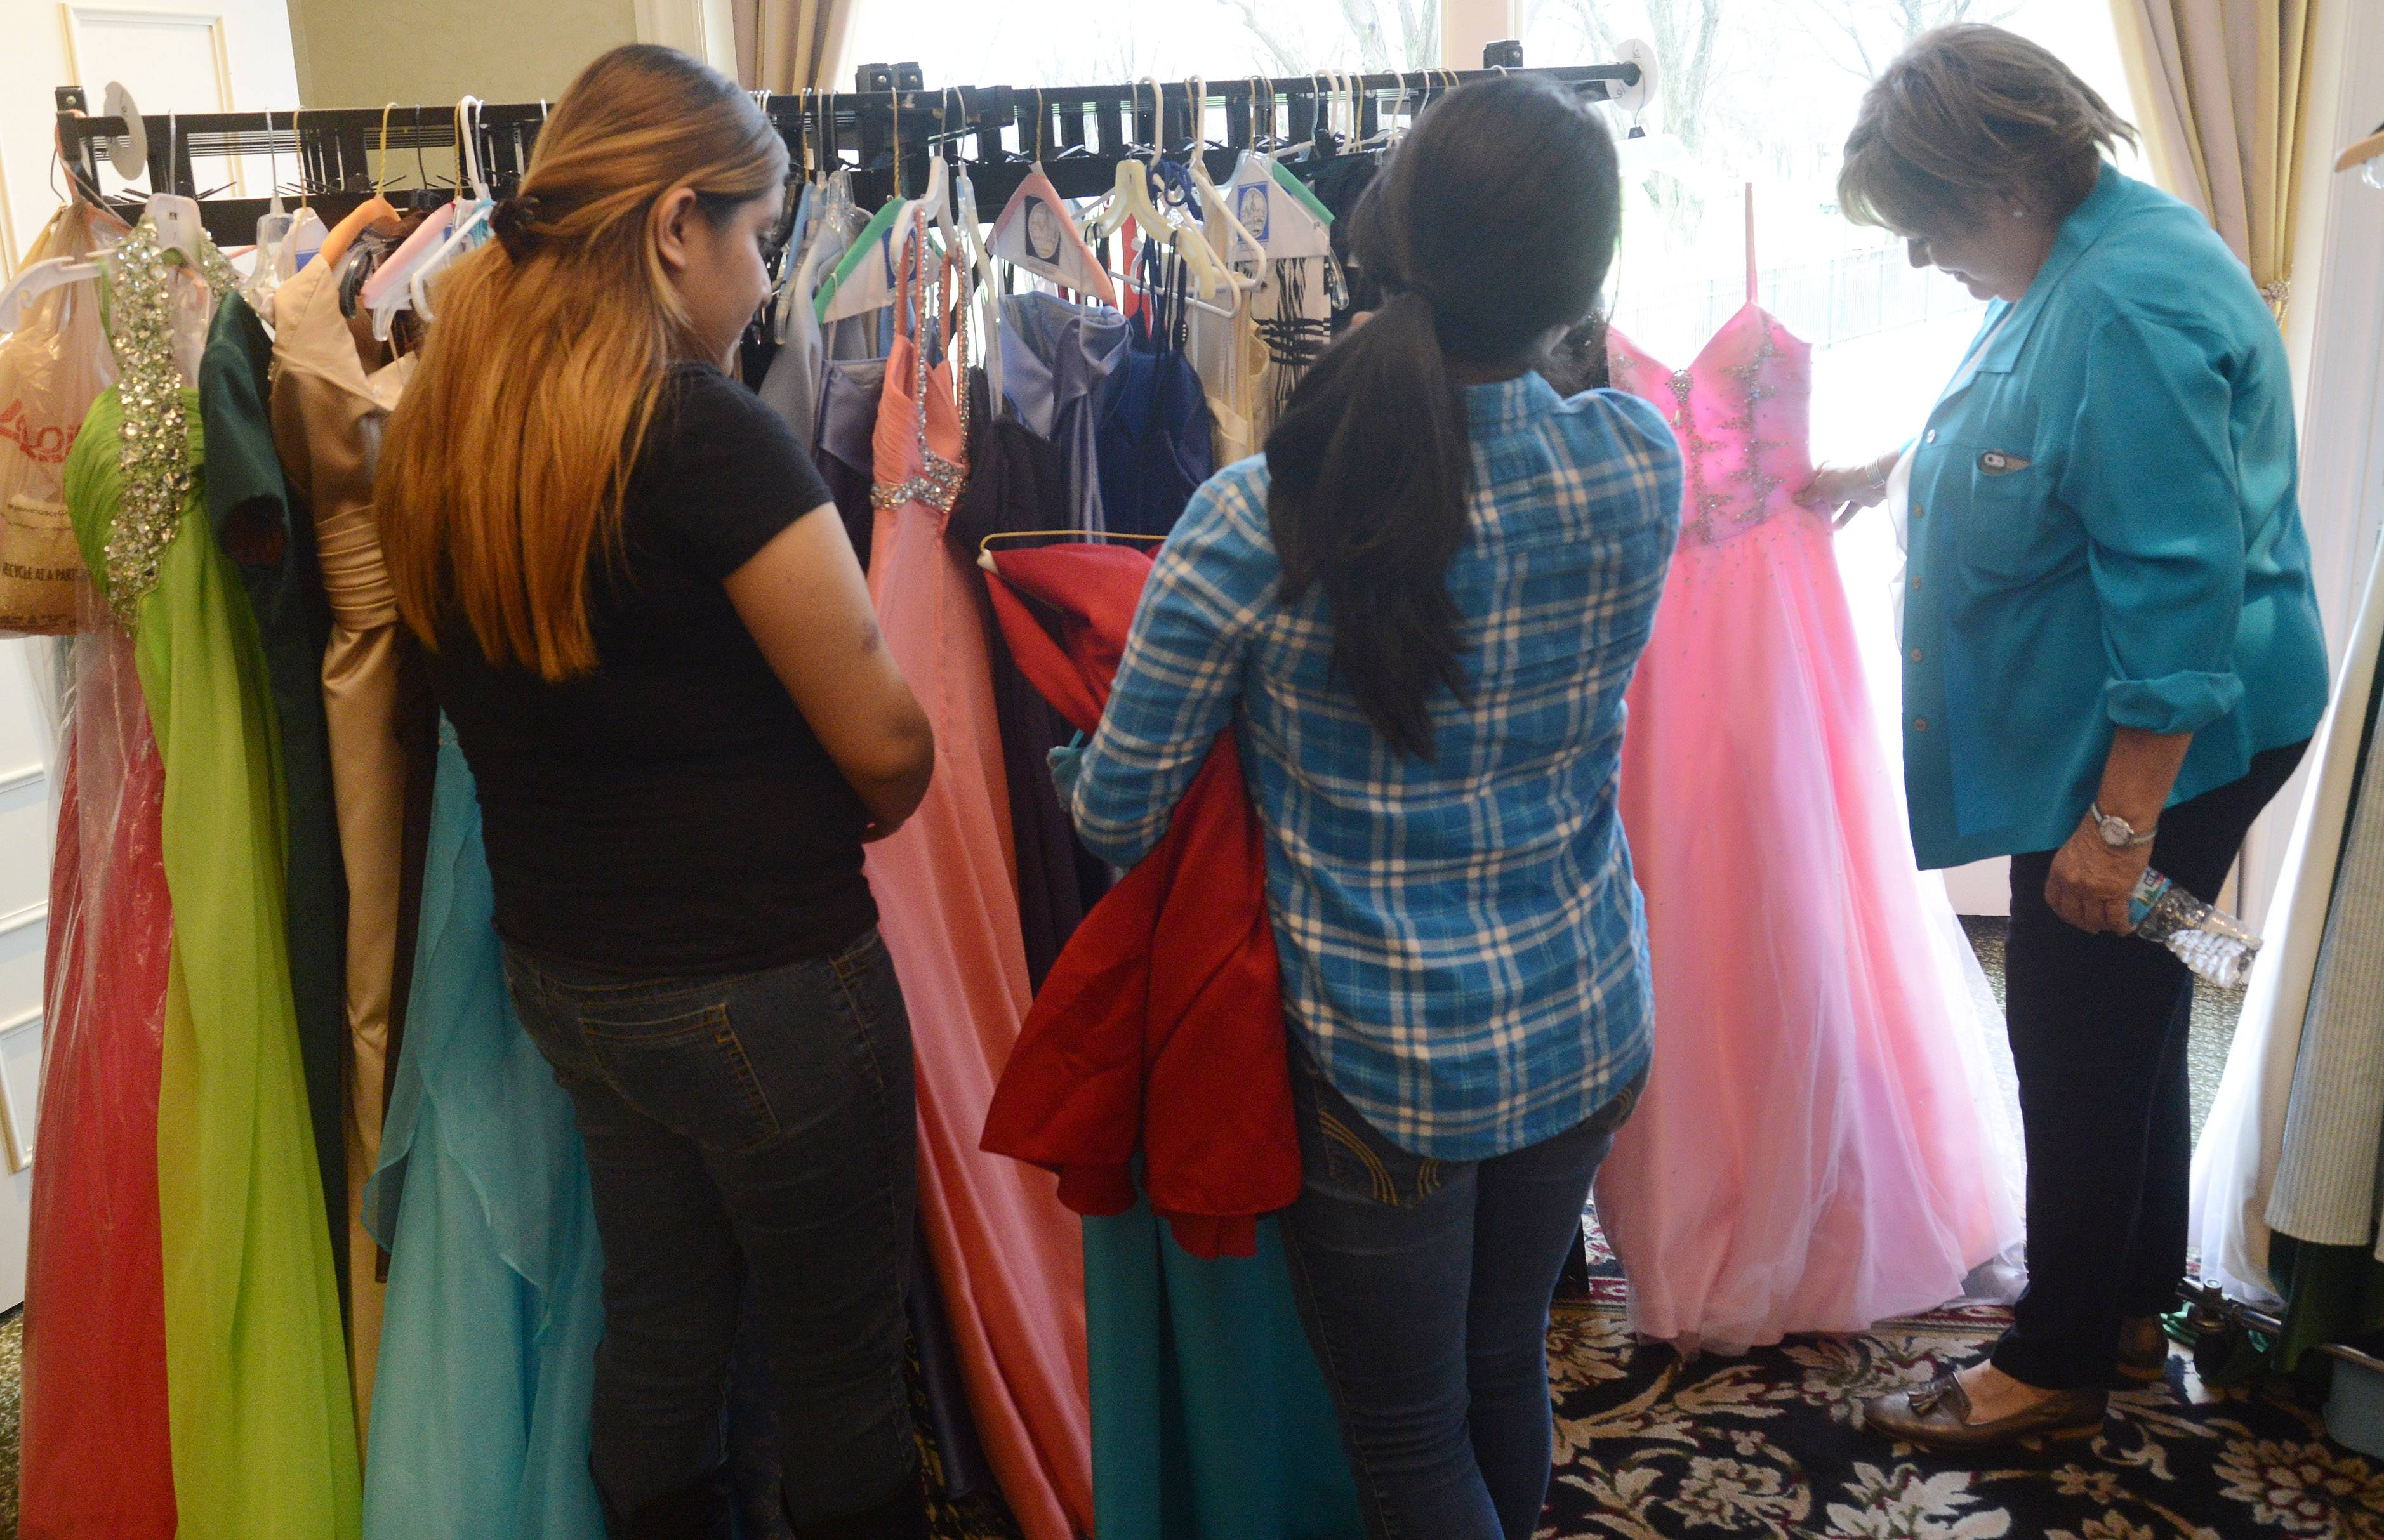 Michaelene Roark, president of the Women's Club of Rolling Green Country Club in Arlington Heights, right, helps students from District 214 pick out prom dresses and shoes.